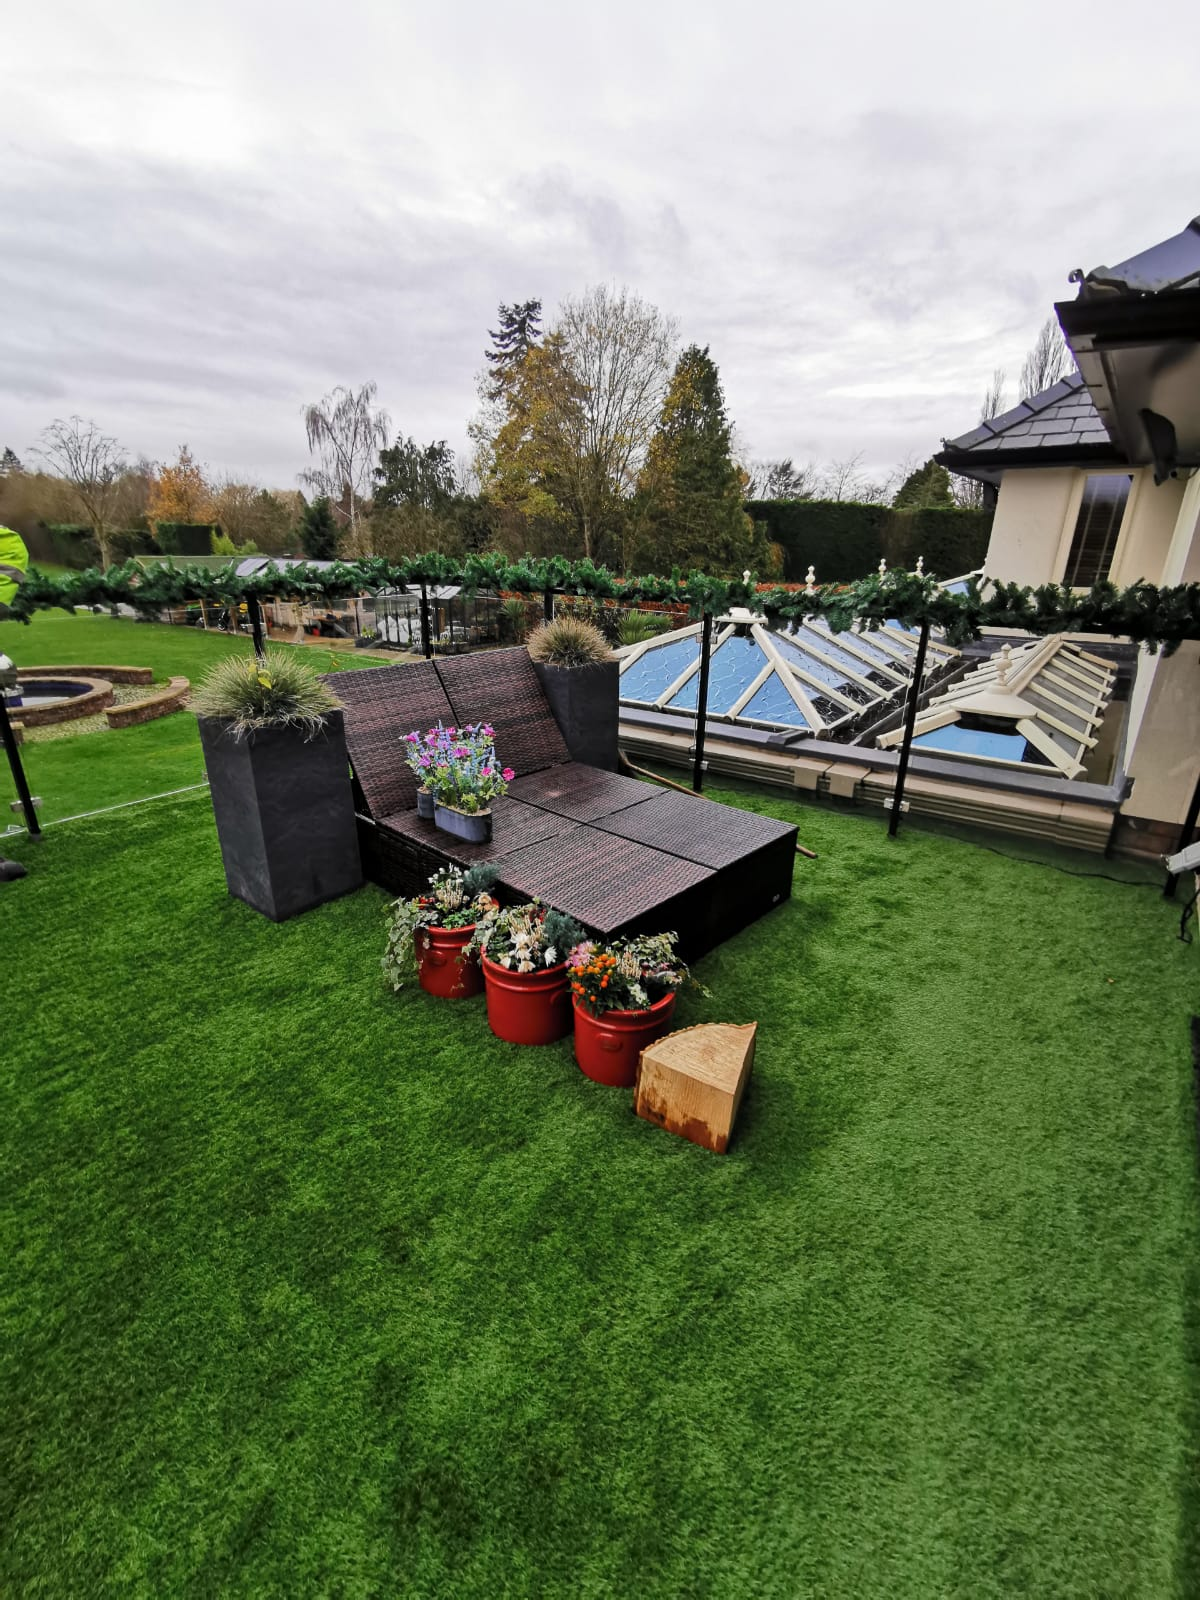 Balcony covered with artificial grass.